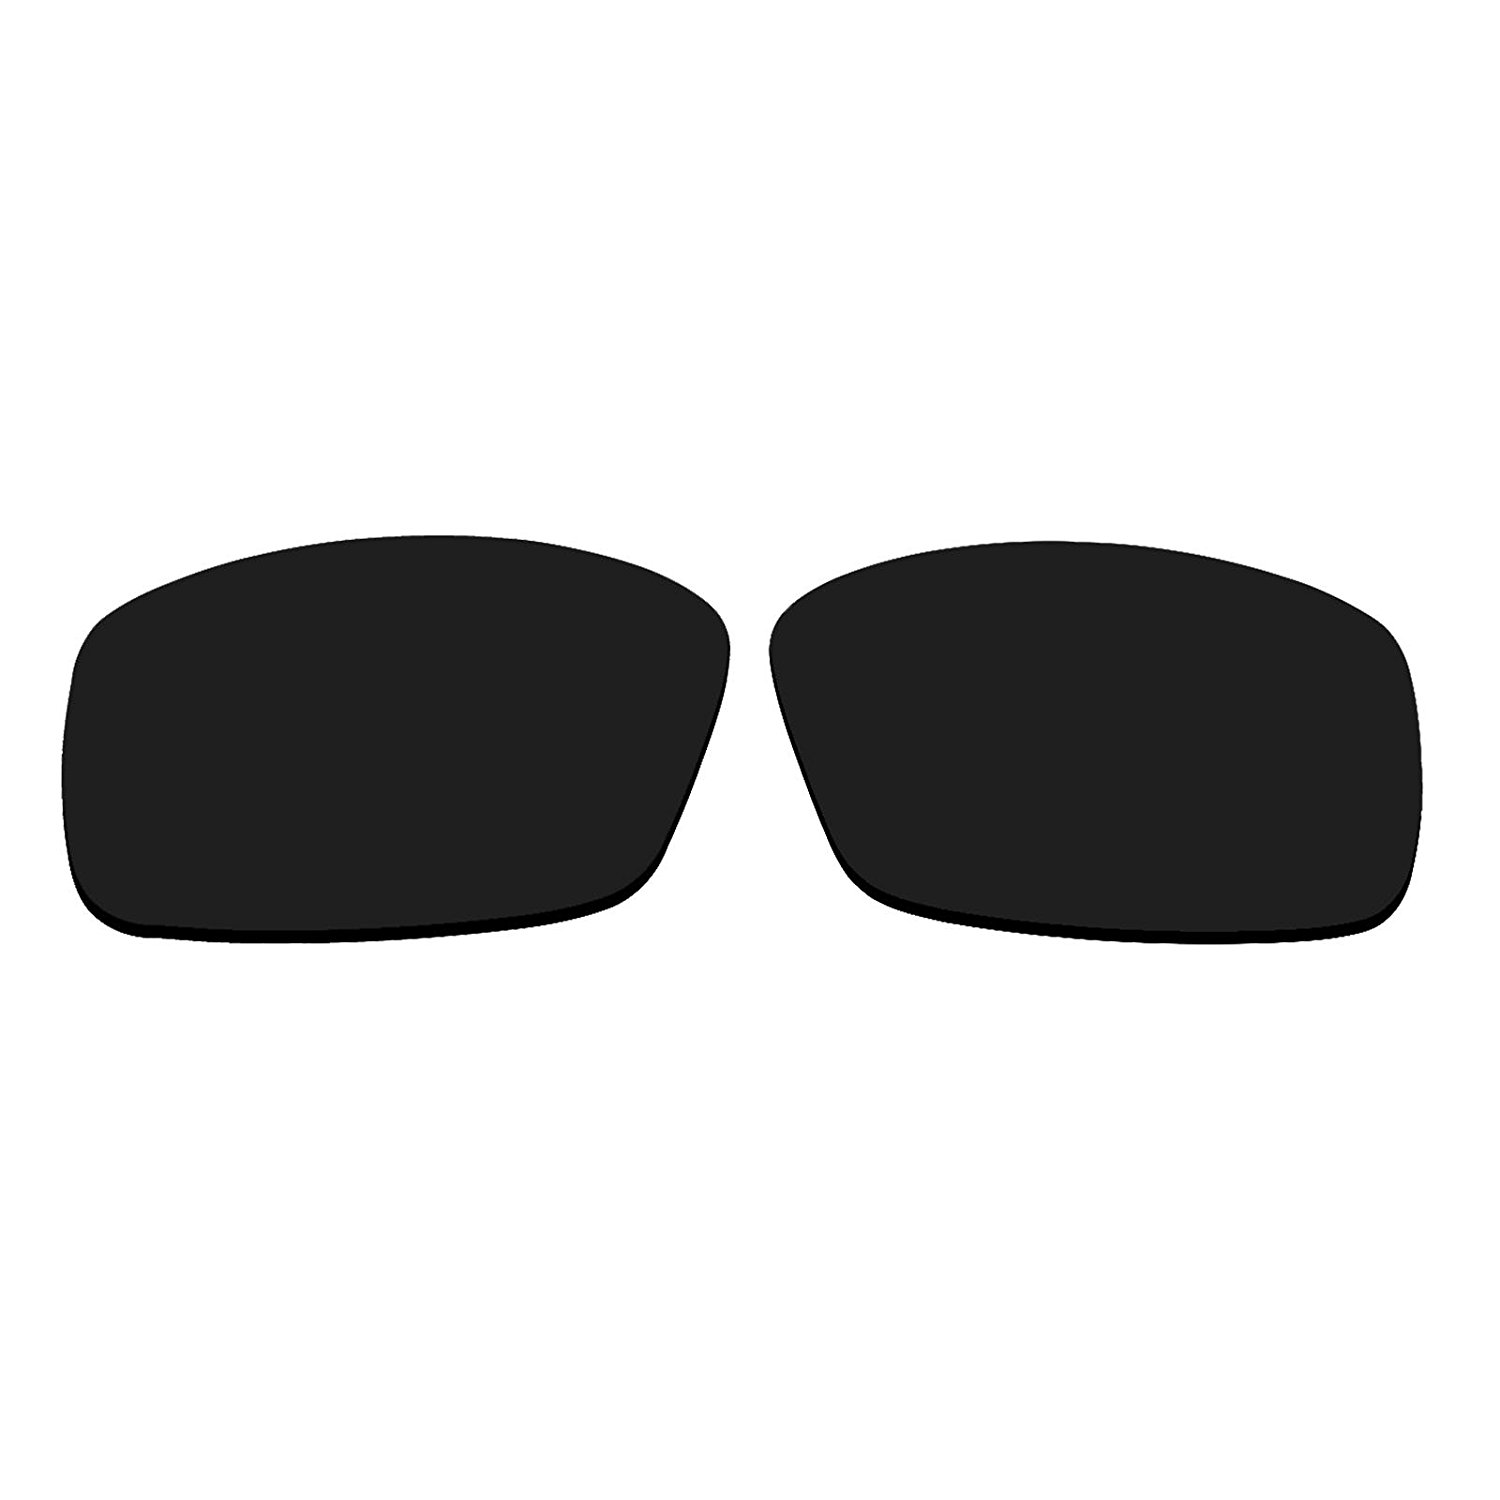 706cd9cdc1 Get Quotations · Polarized Replacement Sunglasses Lenses for Spy Optics  Admiral (Black)